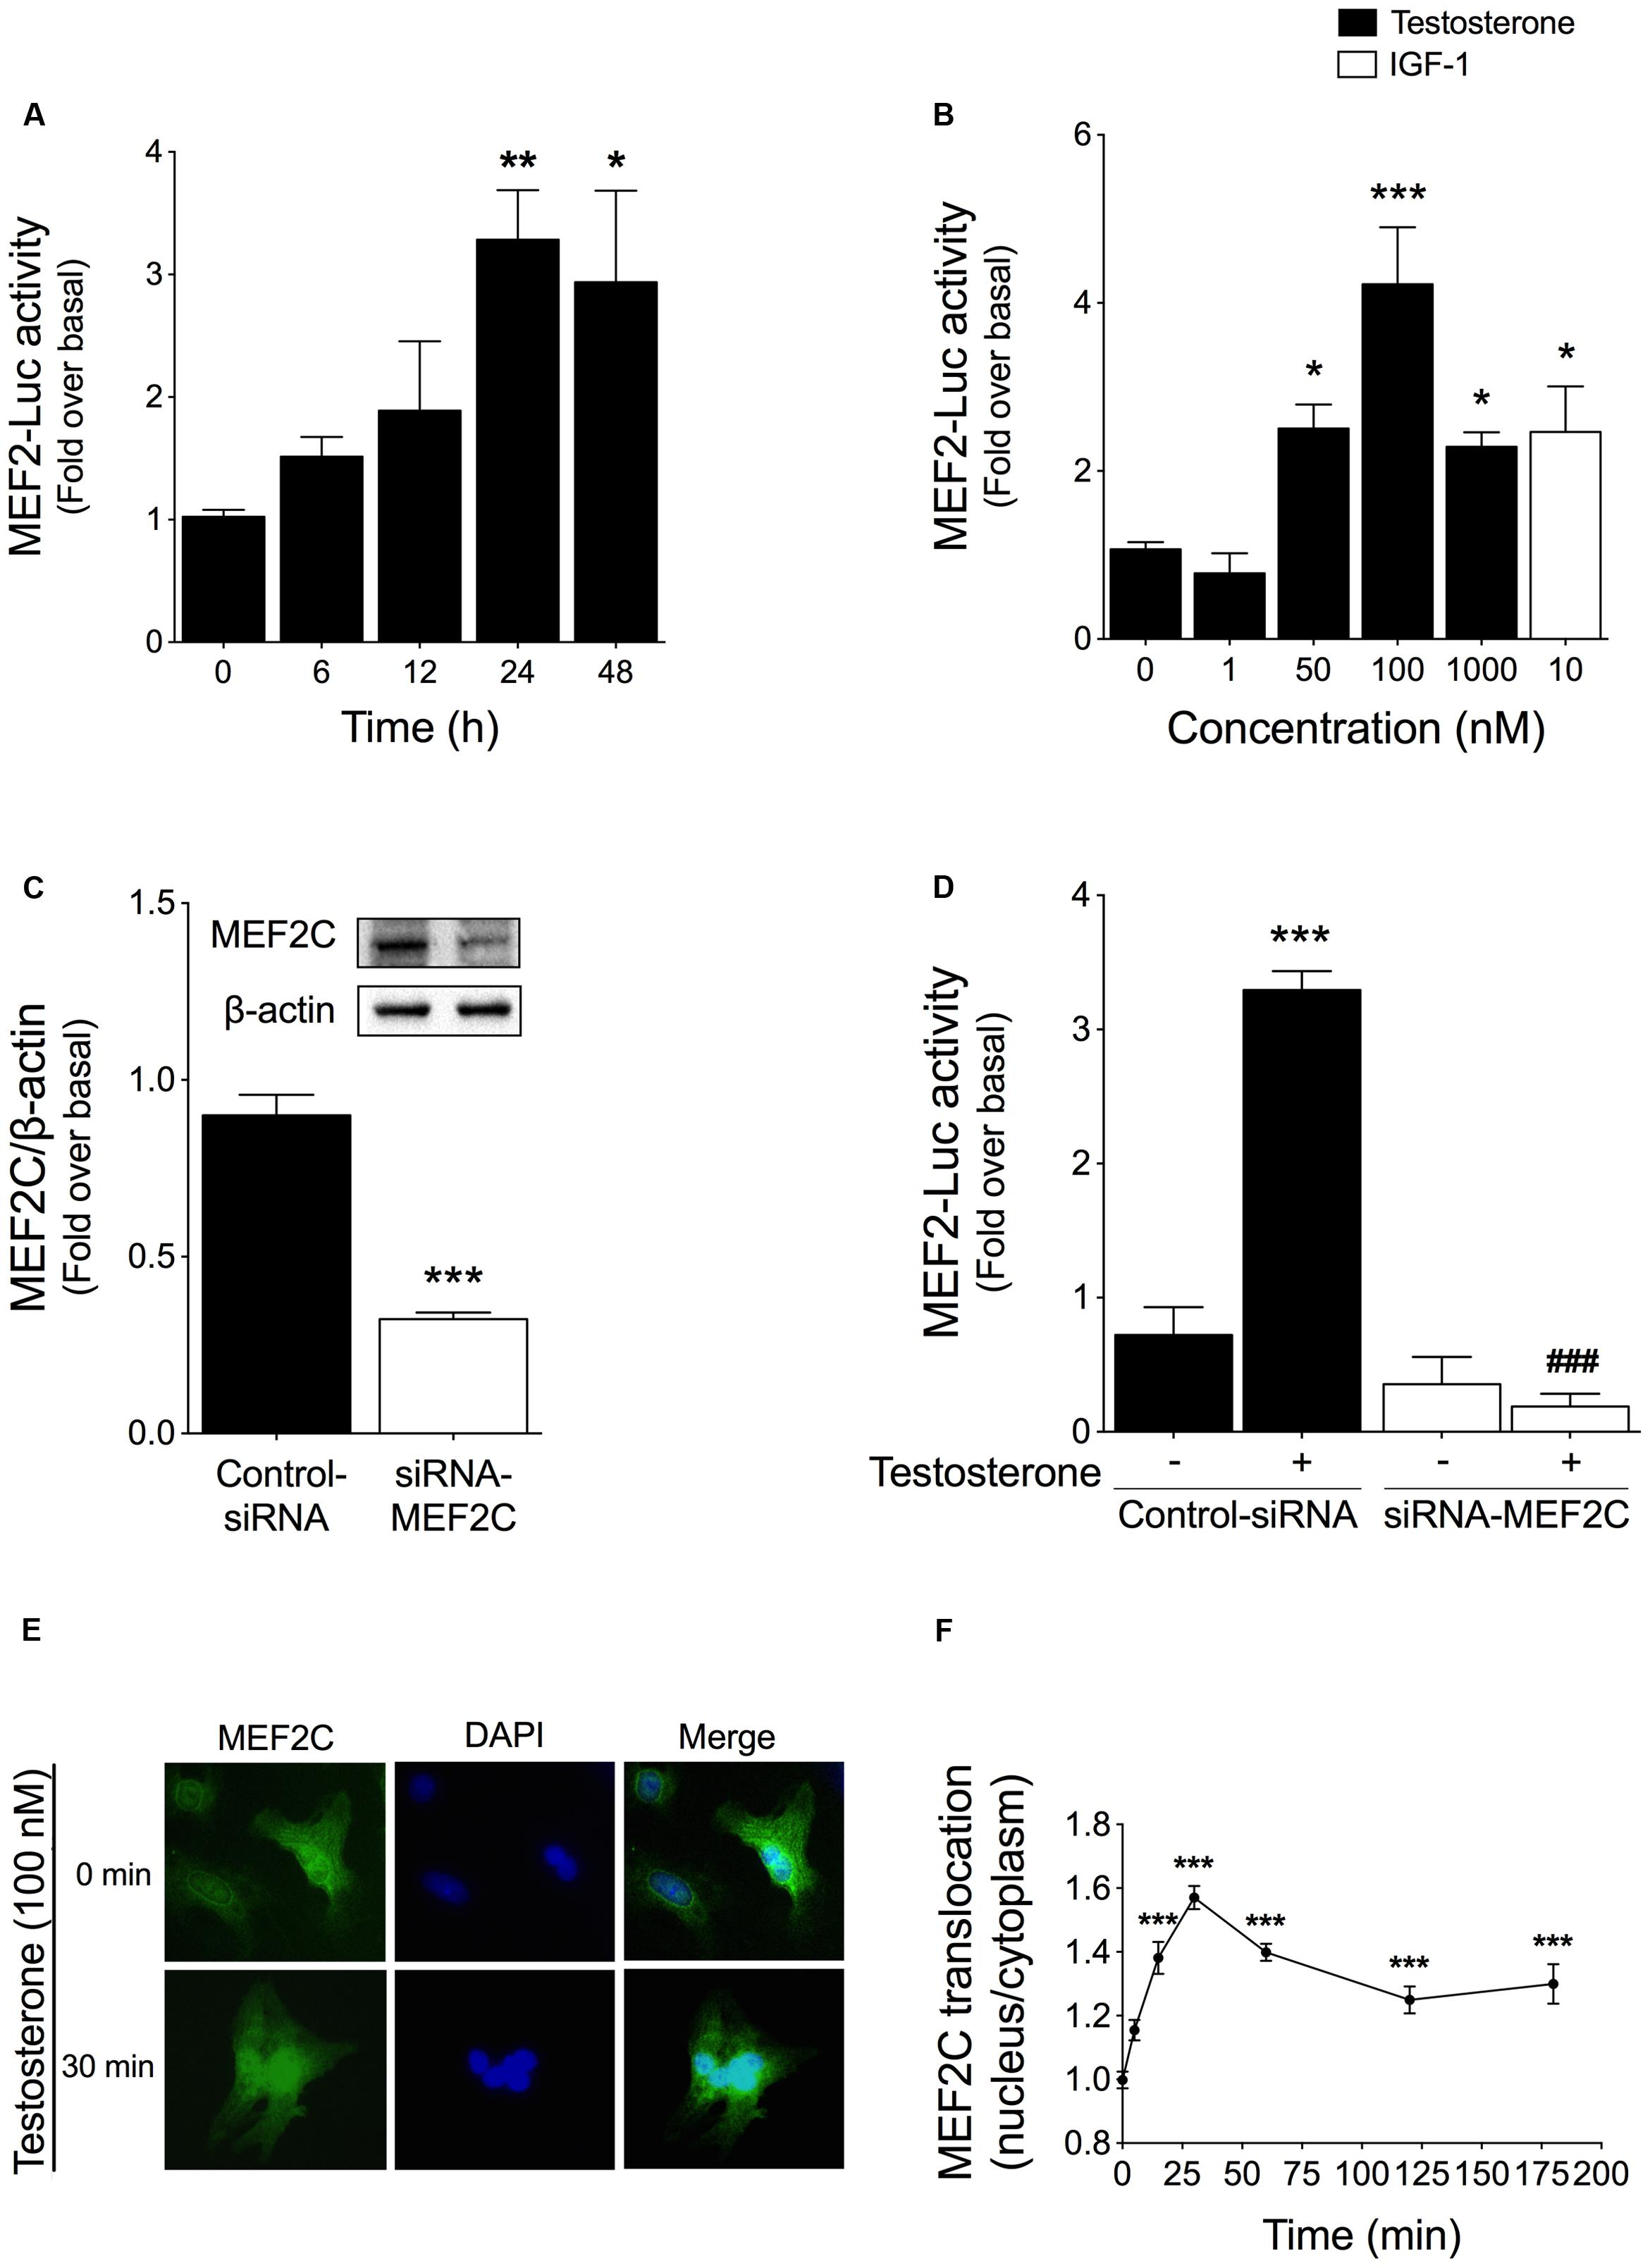 Frontiers | Ca2+/Calmodulin-Dependent Protein Kinase II and Androgen